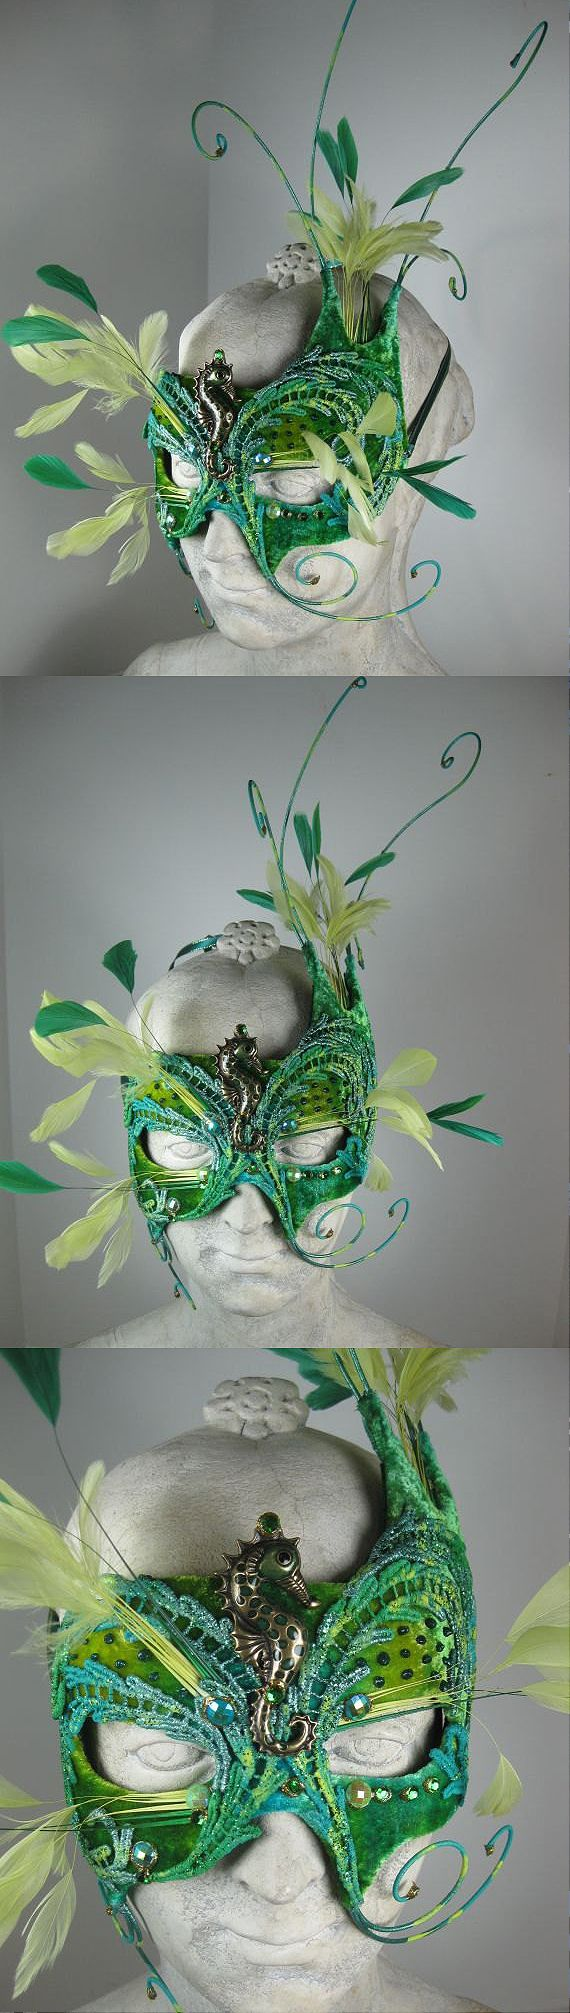 This mask is a limited edition piece. It is covered with hand dyed silk velvet and then decorated with feathers, lace, seahorse centerpiece and rhinestones. It is lined with soft felt for comfort. Fun, unusual headpiece / mask for Mardi Gras Carnival celebrations costume ideas. #mardigras #masquerade #masquerademask #headdress #mardigrasideas #affiliatelink #fashion #carnival #burningmanfestival #halloween